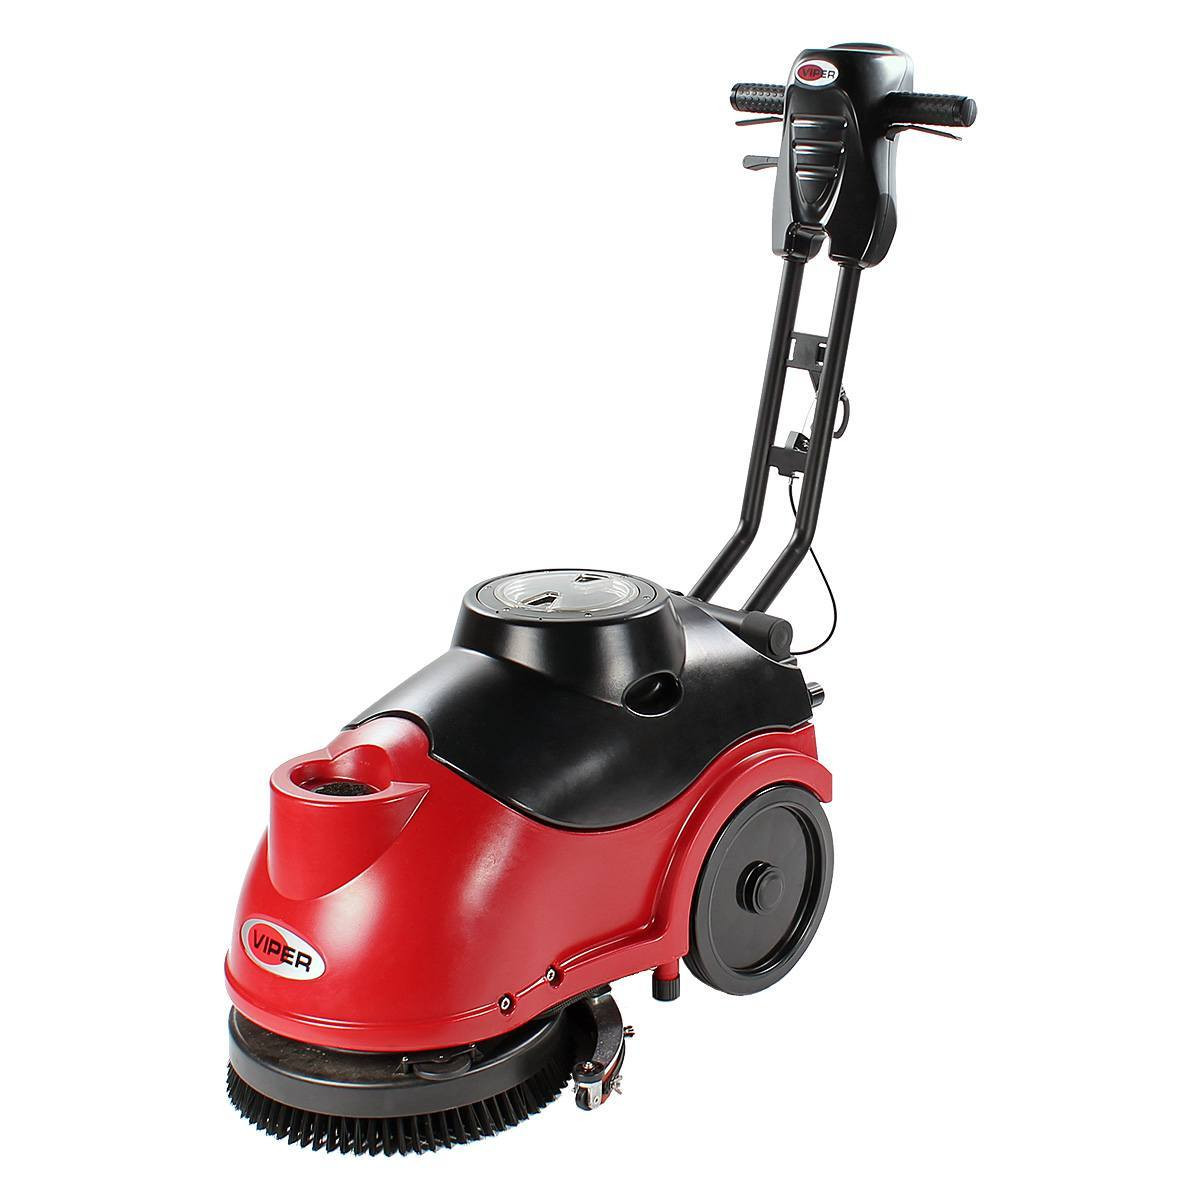 Viper Compact Scrubber Left Front Jpg